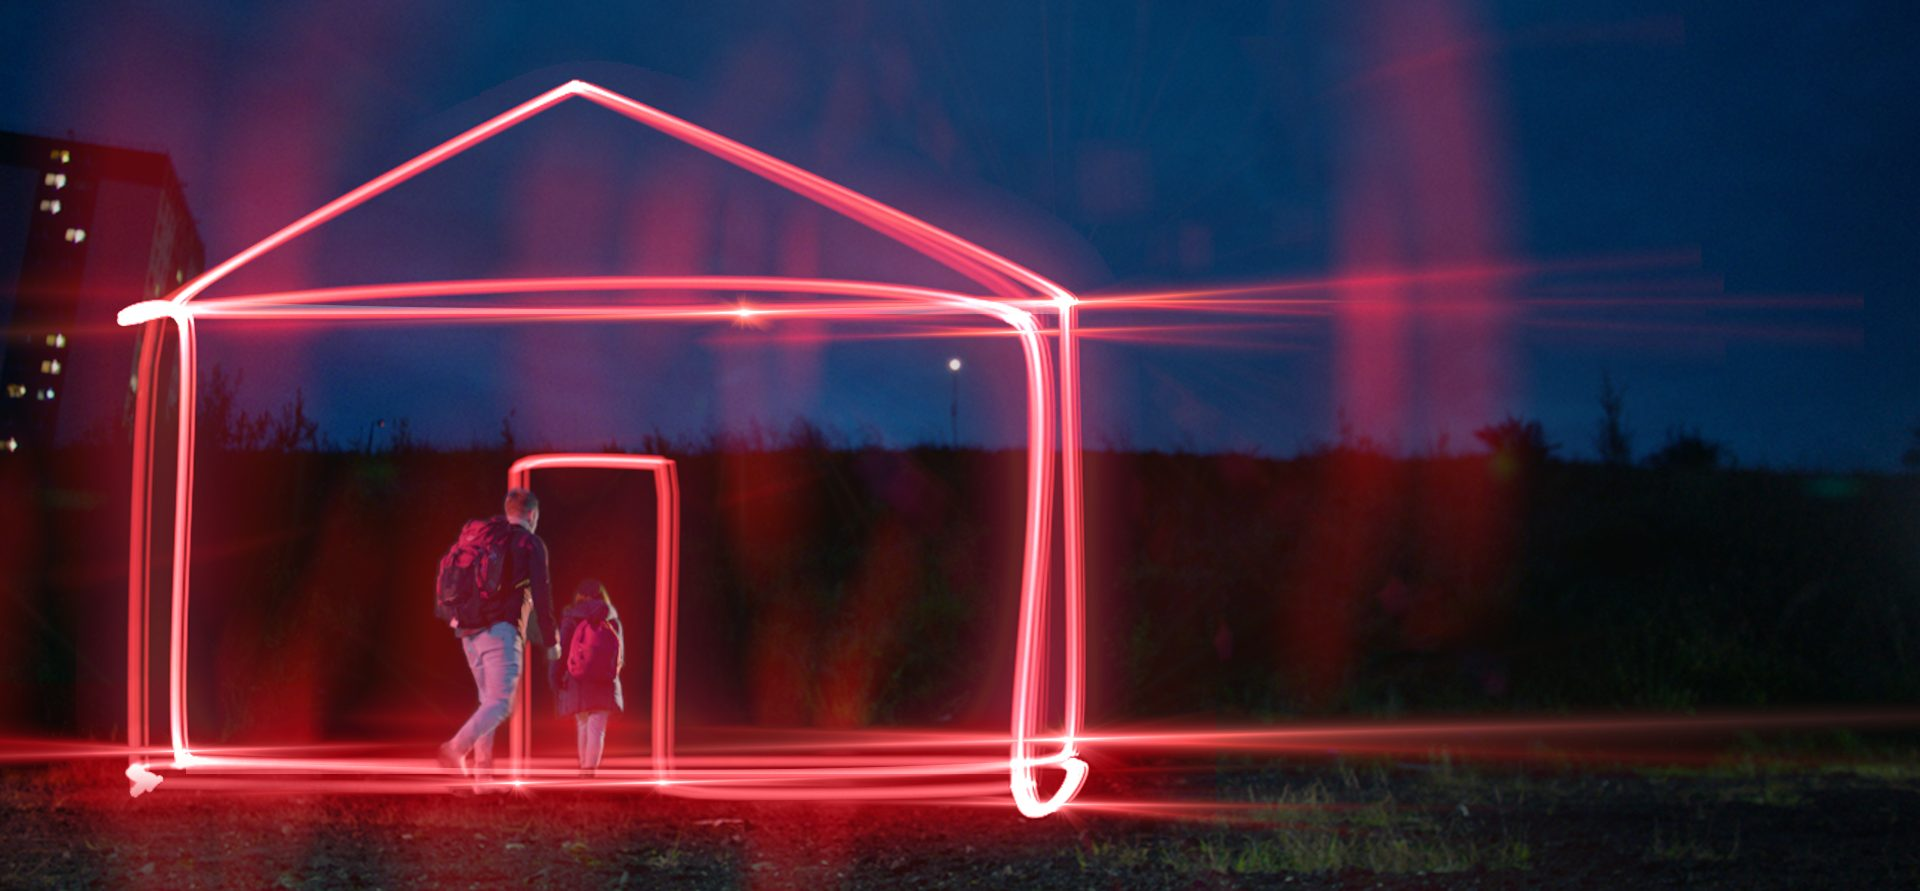 A Man and Child walking through a virtual house door